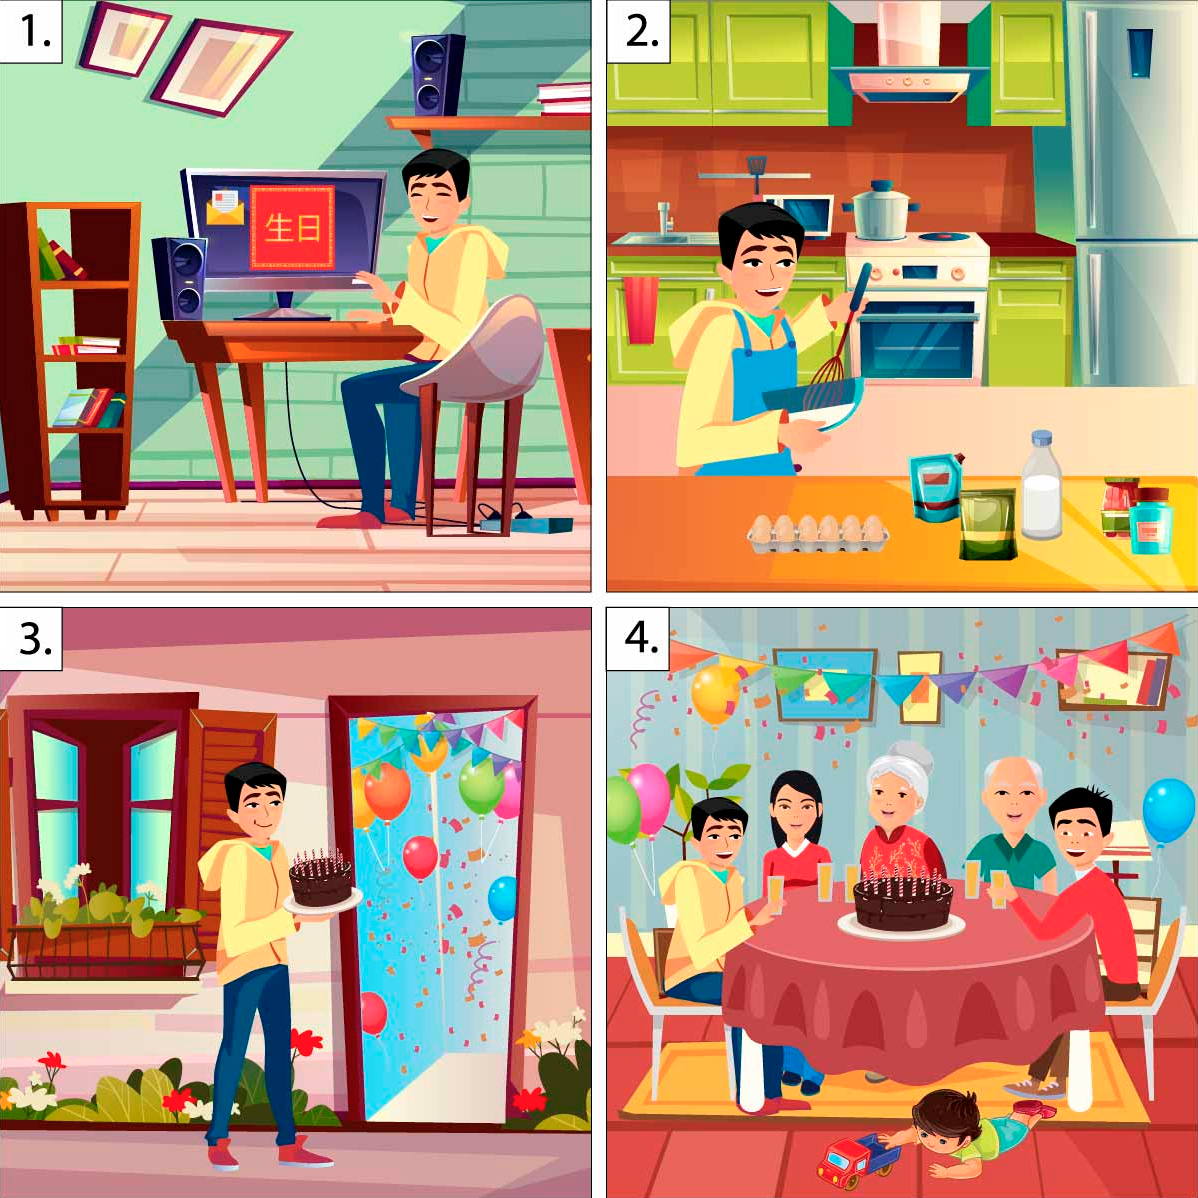 A four-panel illustration showing a student going to a birthday party for his Chinese grandmother.